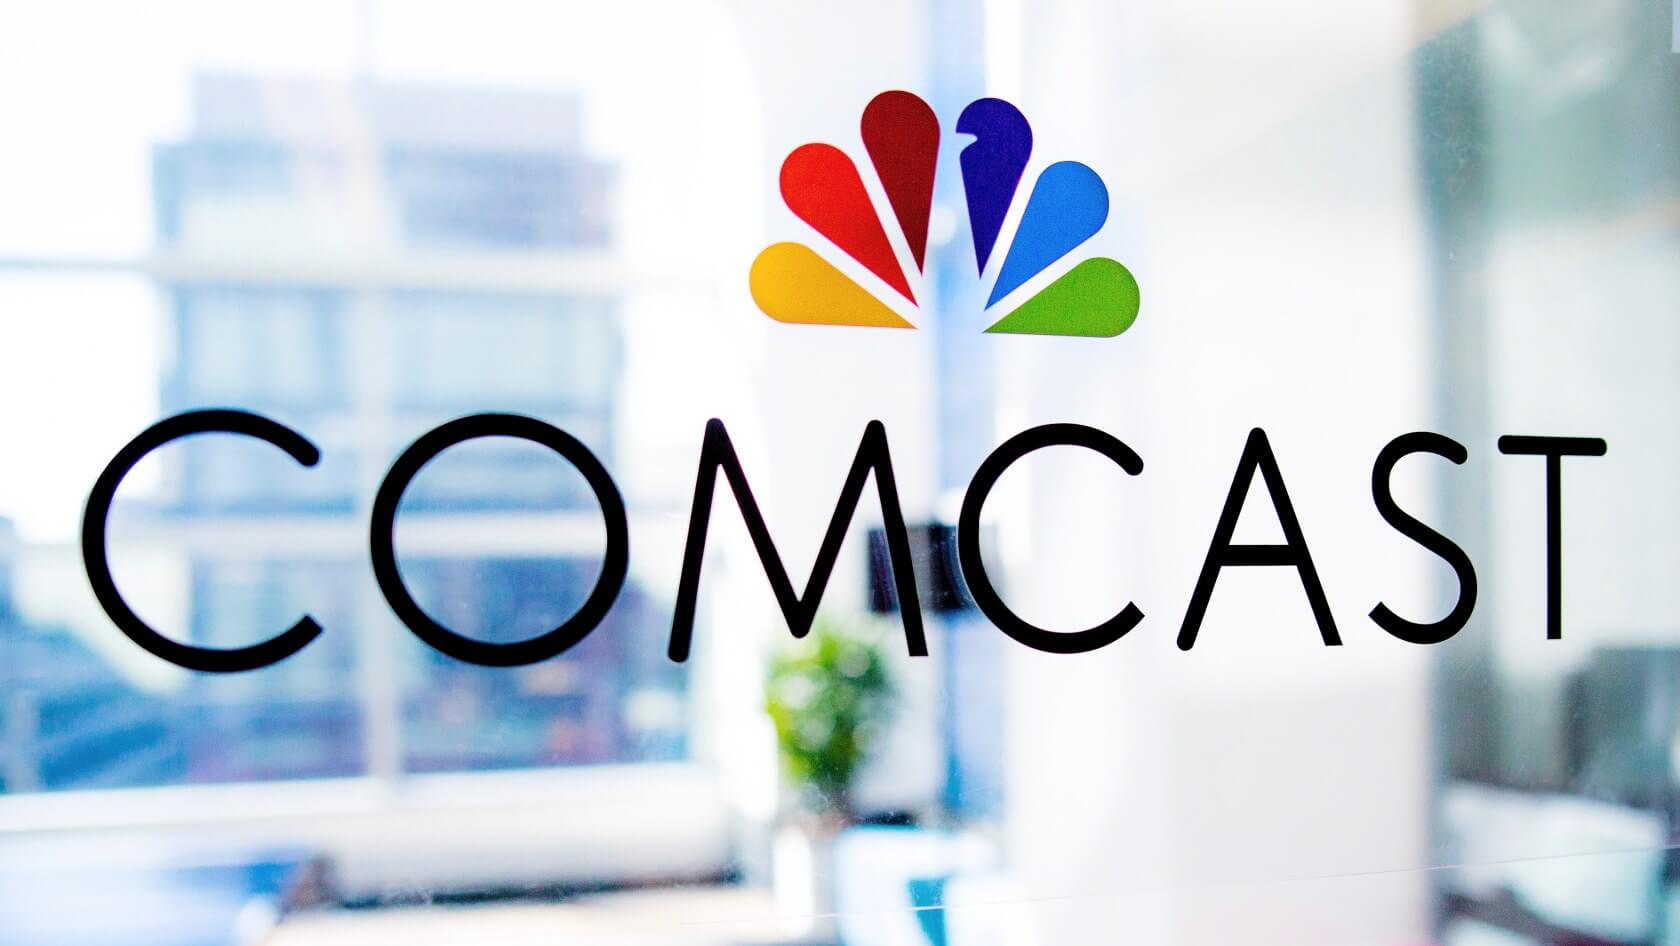 Comcast lost 477,000 cable customers in Q2 2020